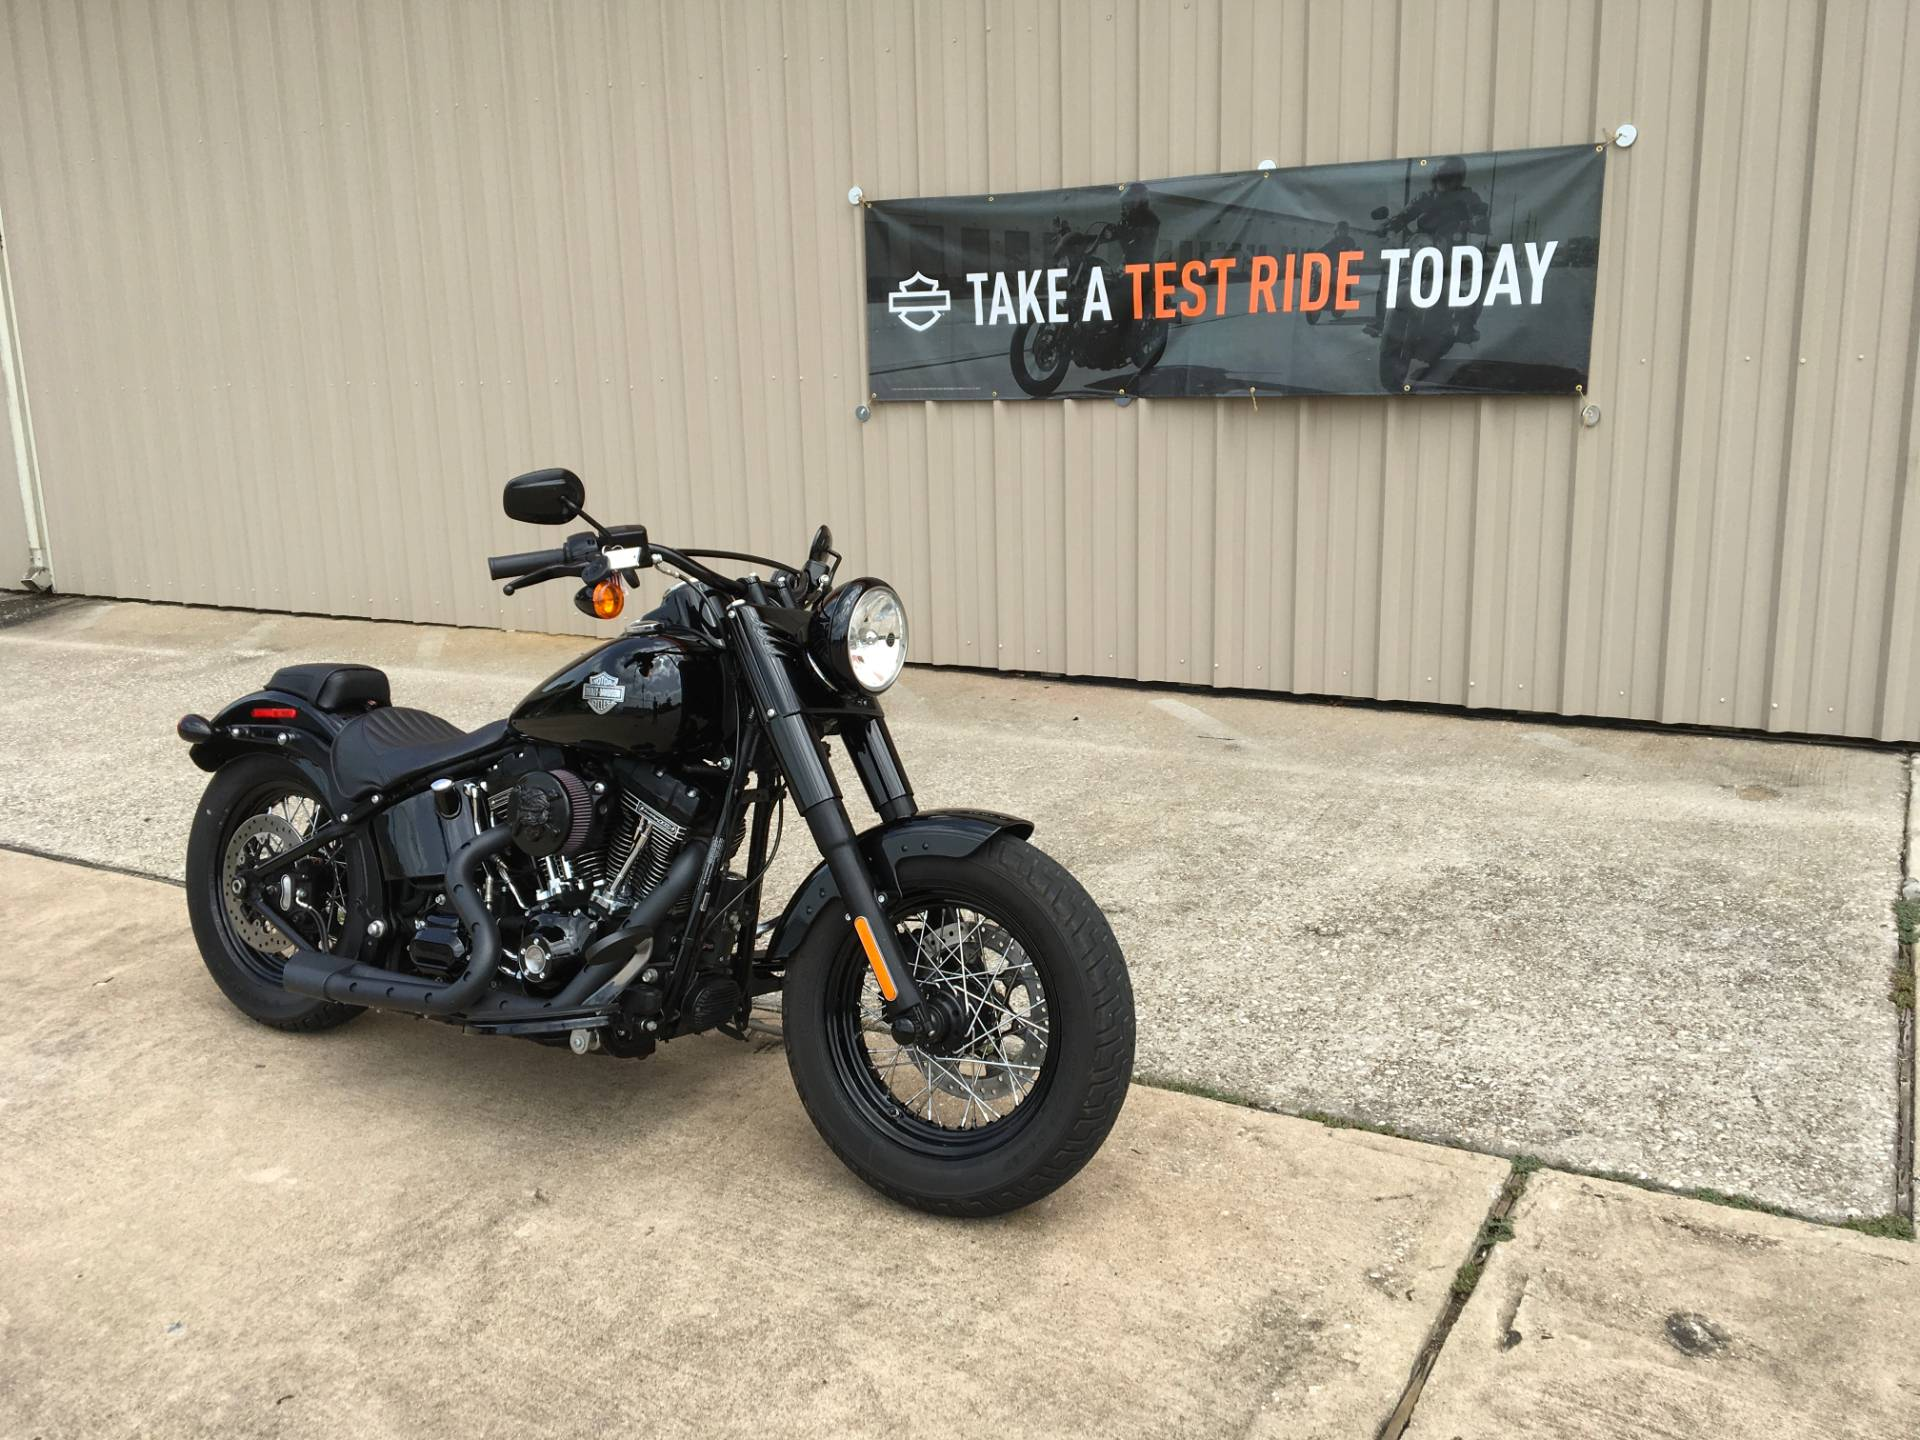 2017 Harley-Davidson Softail Slim® S in Conroe, Texas - Photo 1